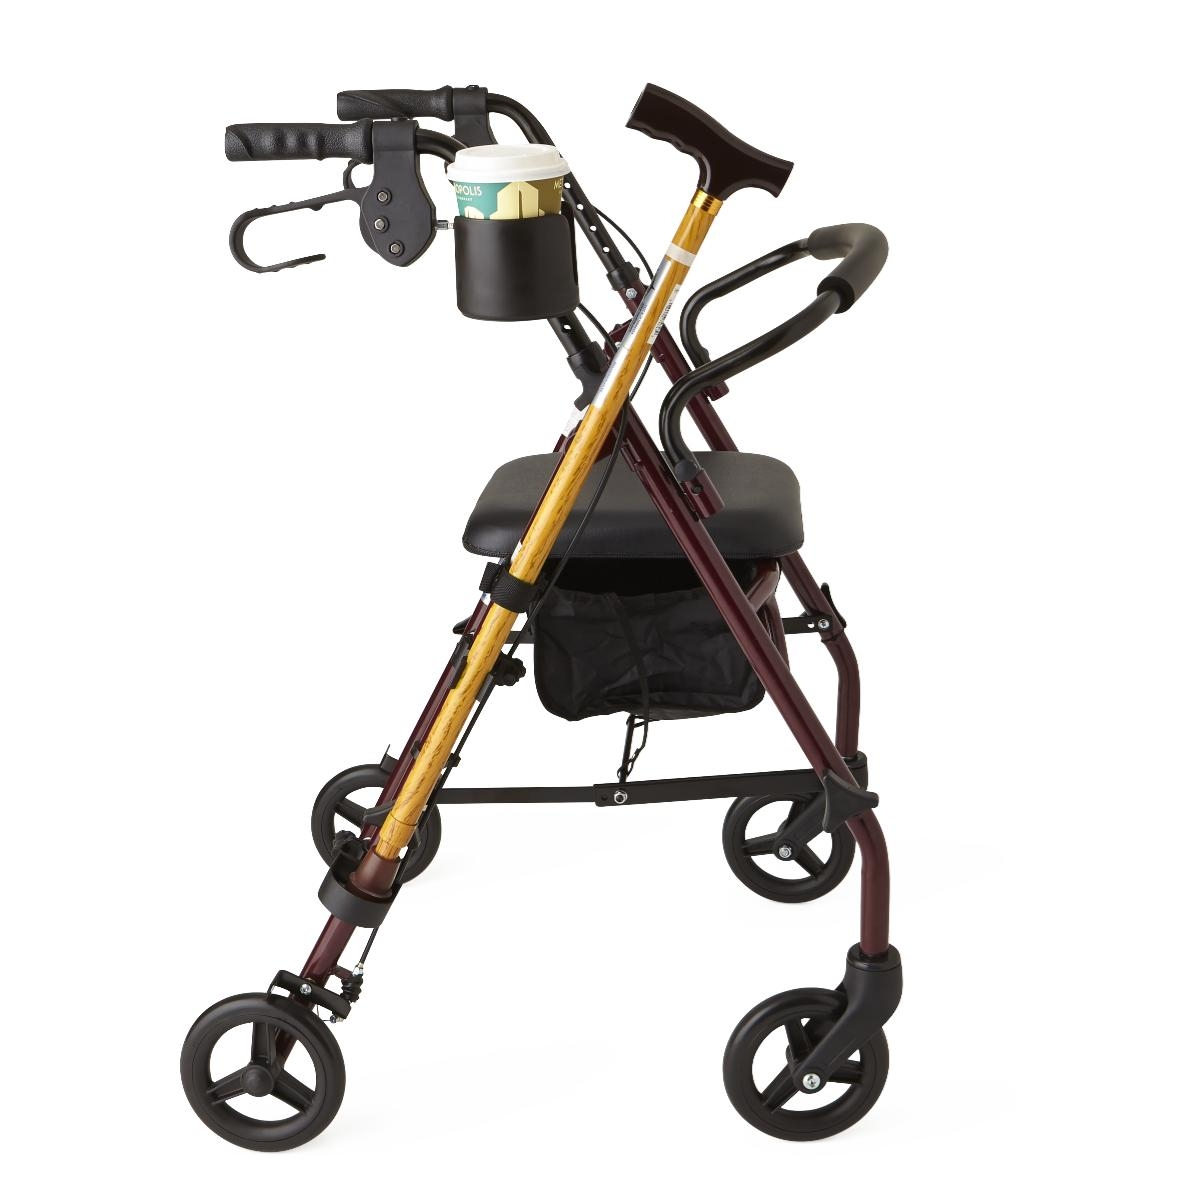 Facilities Special Needs Positioning & Mobility Wheelchairs & Walkers - Mdscupcanehw - Holder Cup And Cane Combo Pack MDSCUPCANEHW